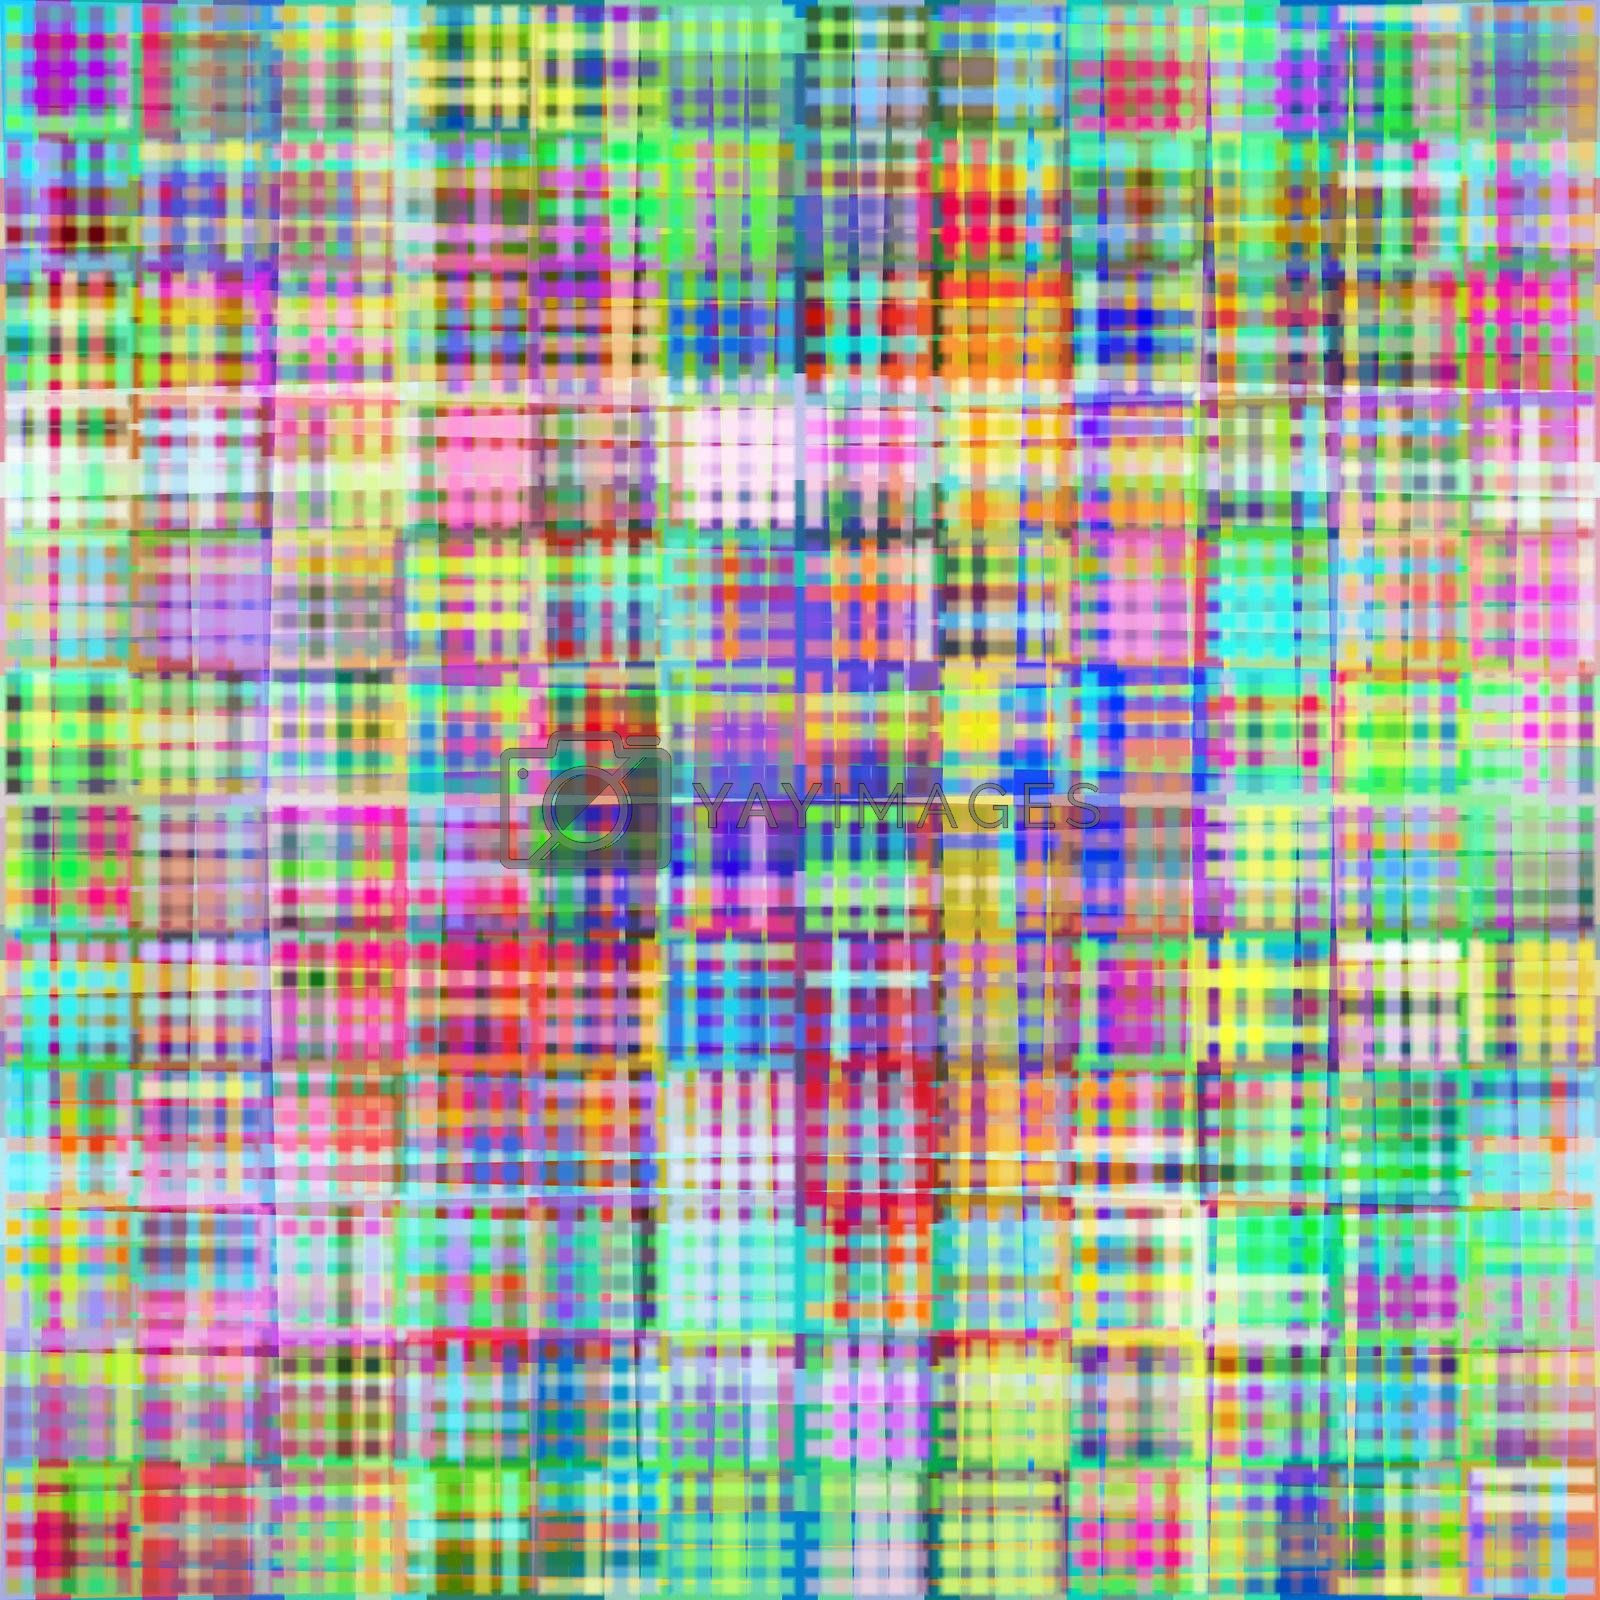 Pattern of blurred cubes in bright colors